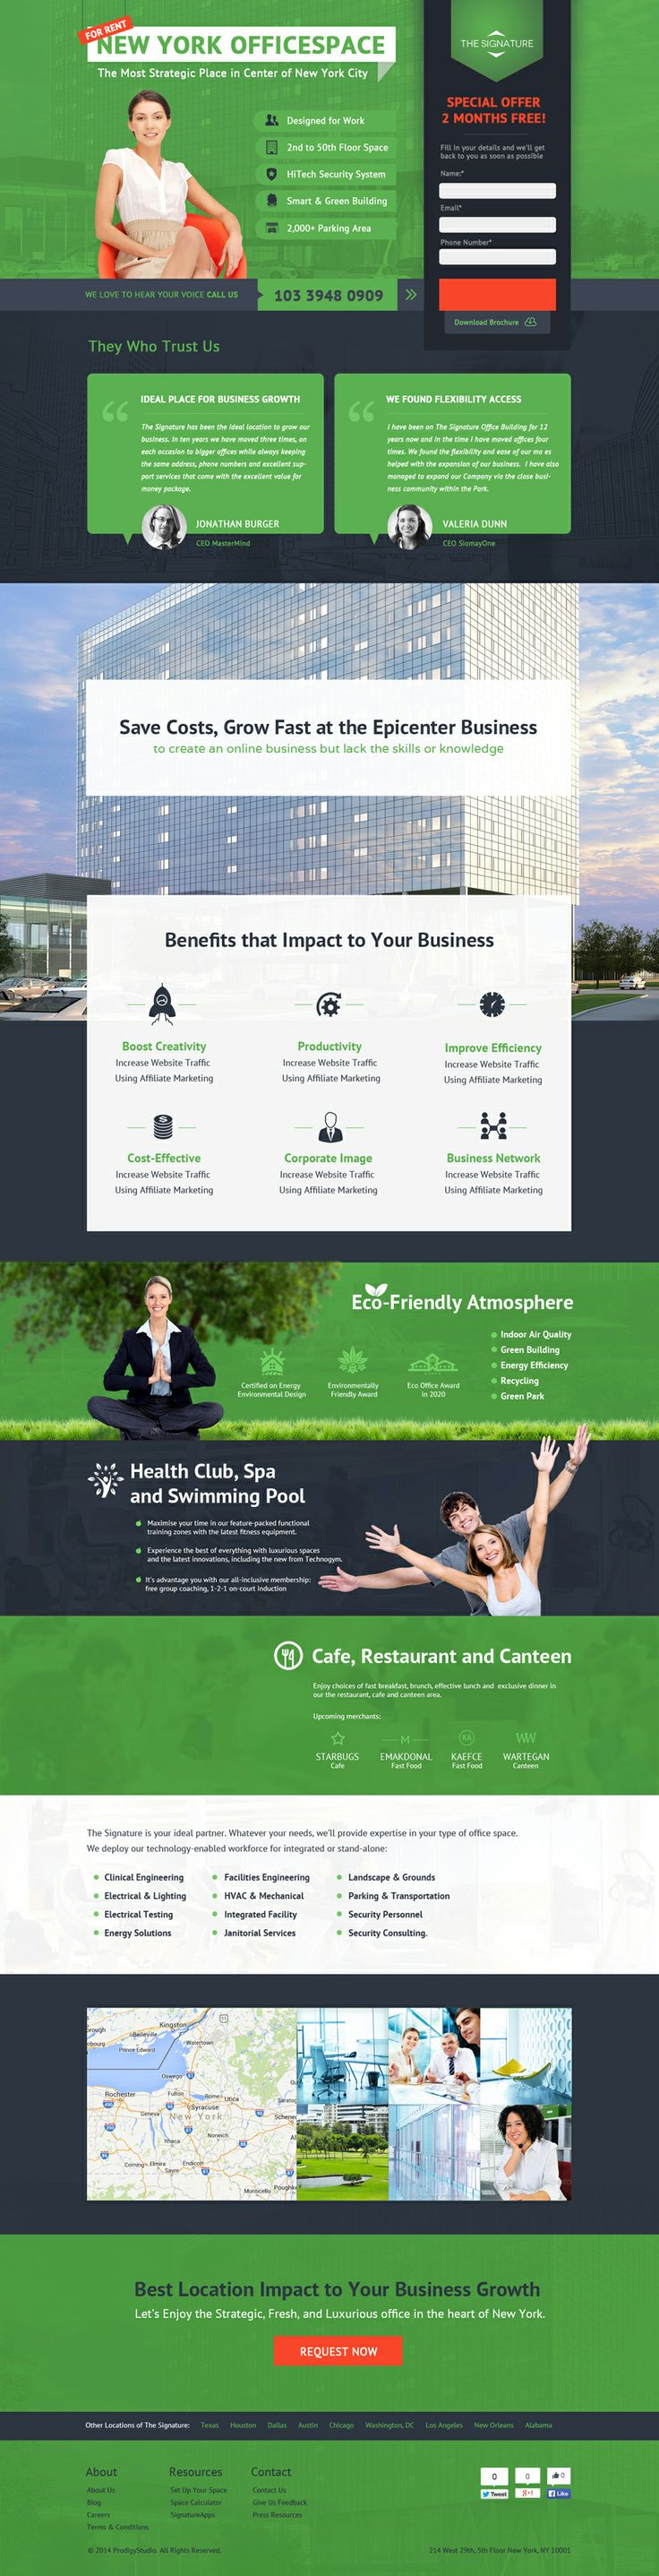 The Signature is unbounce landing page help you to create targeted web people who want to get lead gen from b2b target.     Download here: http://themeforest.net/item/the-signature-condo-landing-page/7114464?ref=prodigystudio